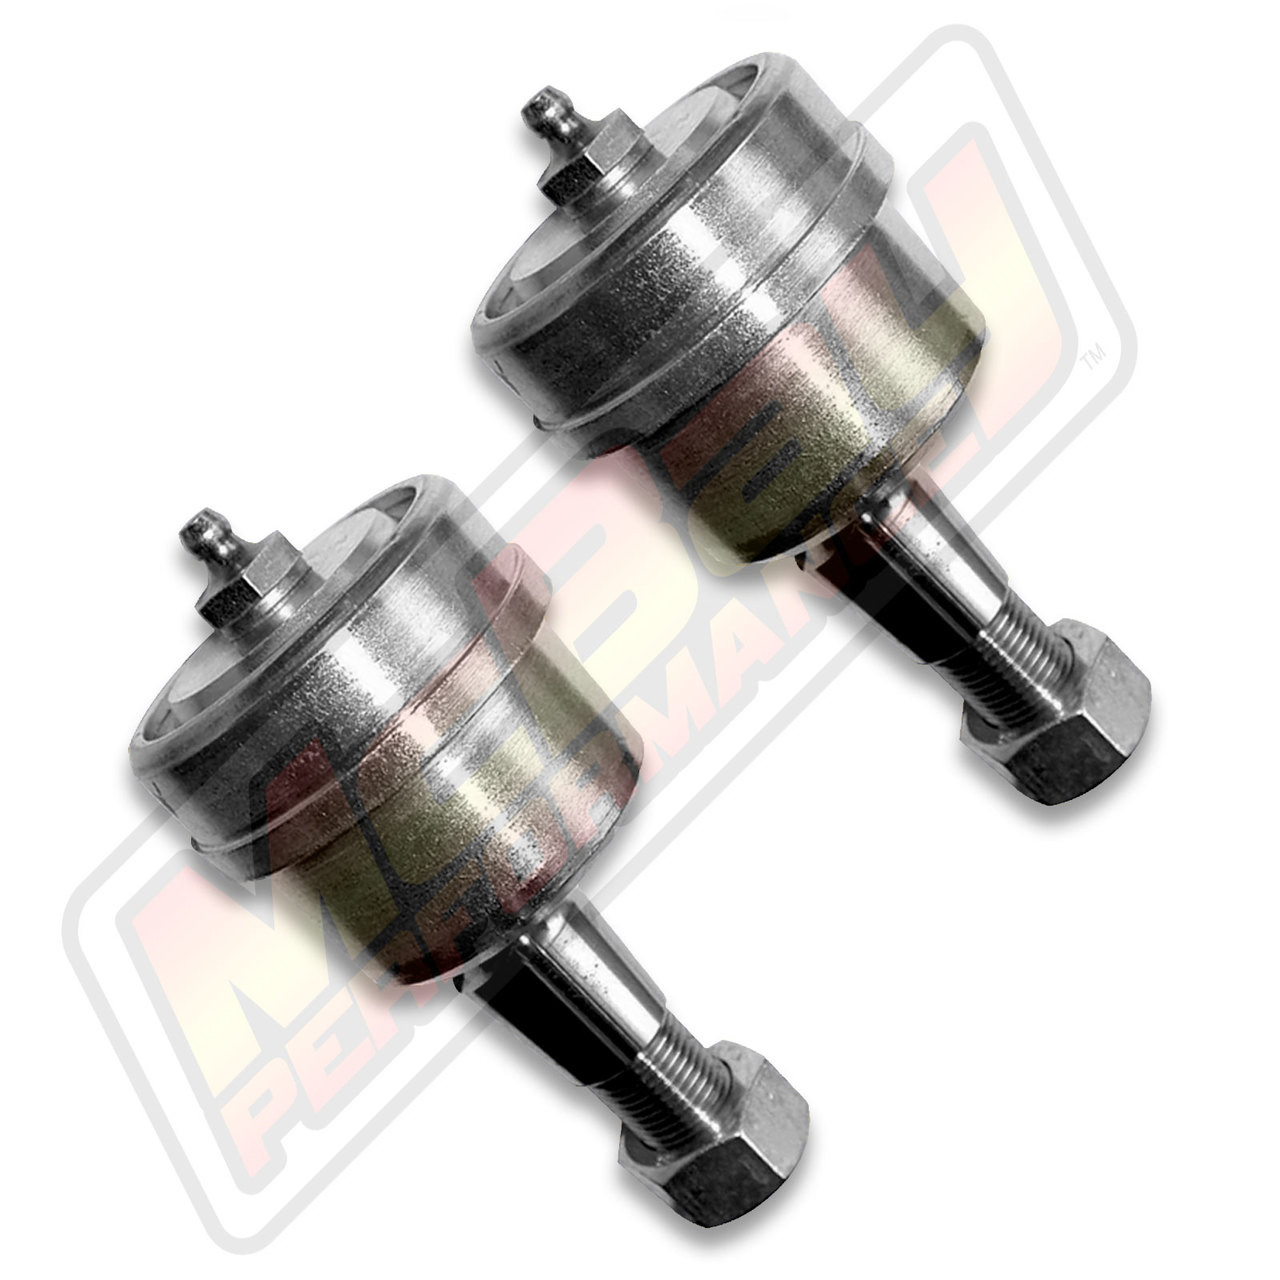 2003-2018 Dodge Ram 2500 / 3500 Adjustable Front Camber Alignment Ball  Joint Set